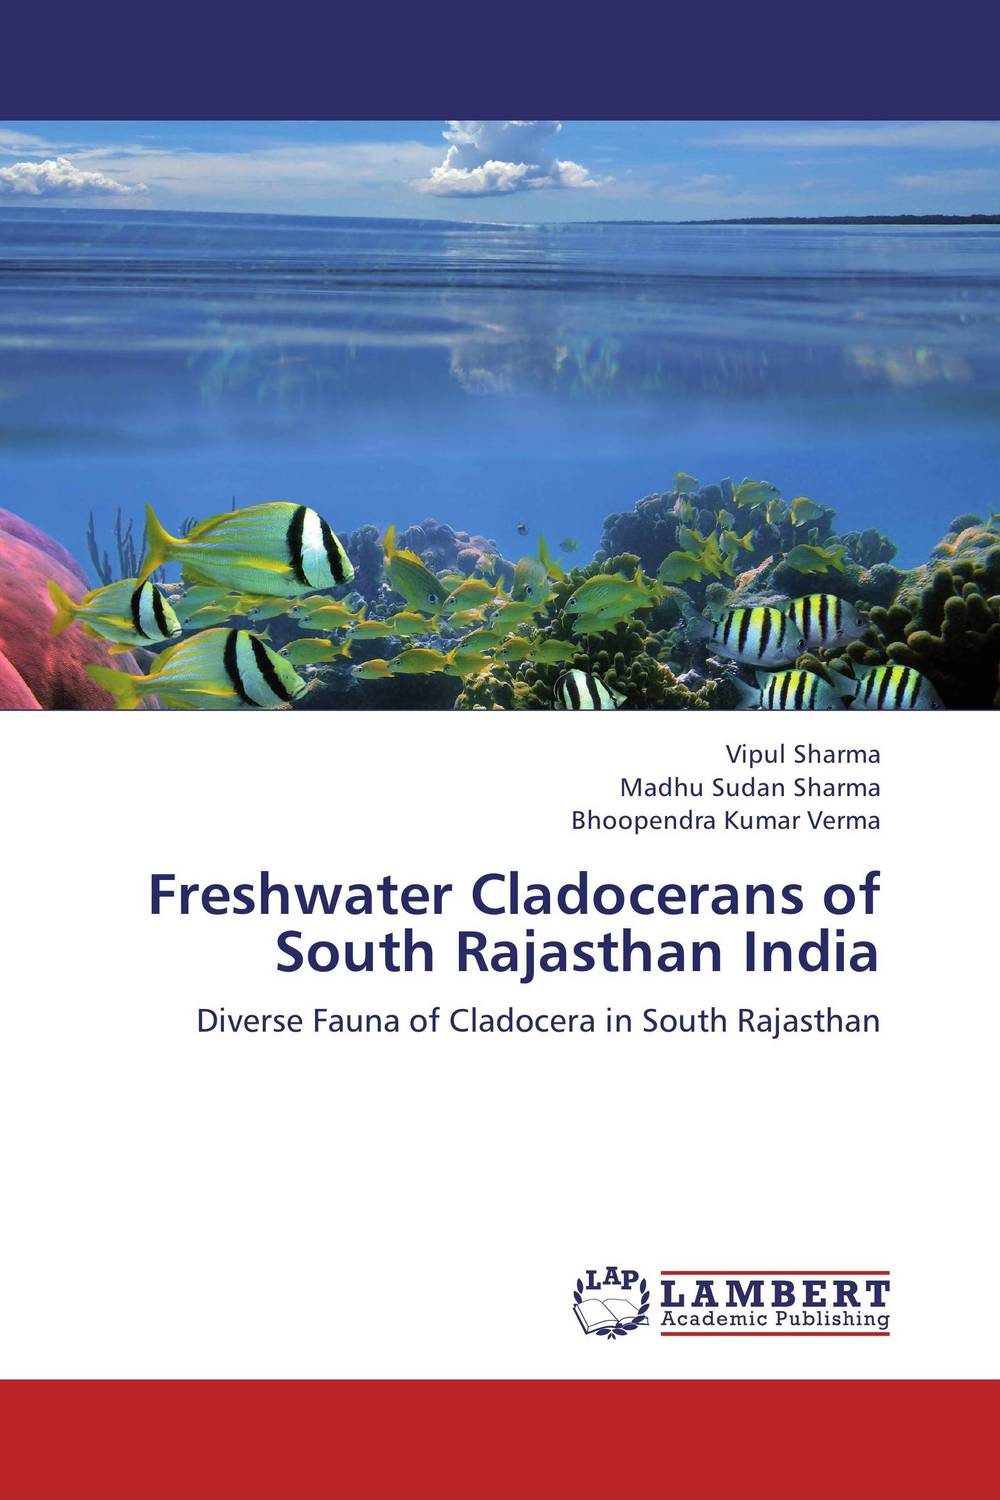 Freshwater Cladocerans of South Rajasthan India a guide to common freshwater crustacean zooplankton of egypt